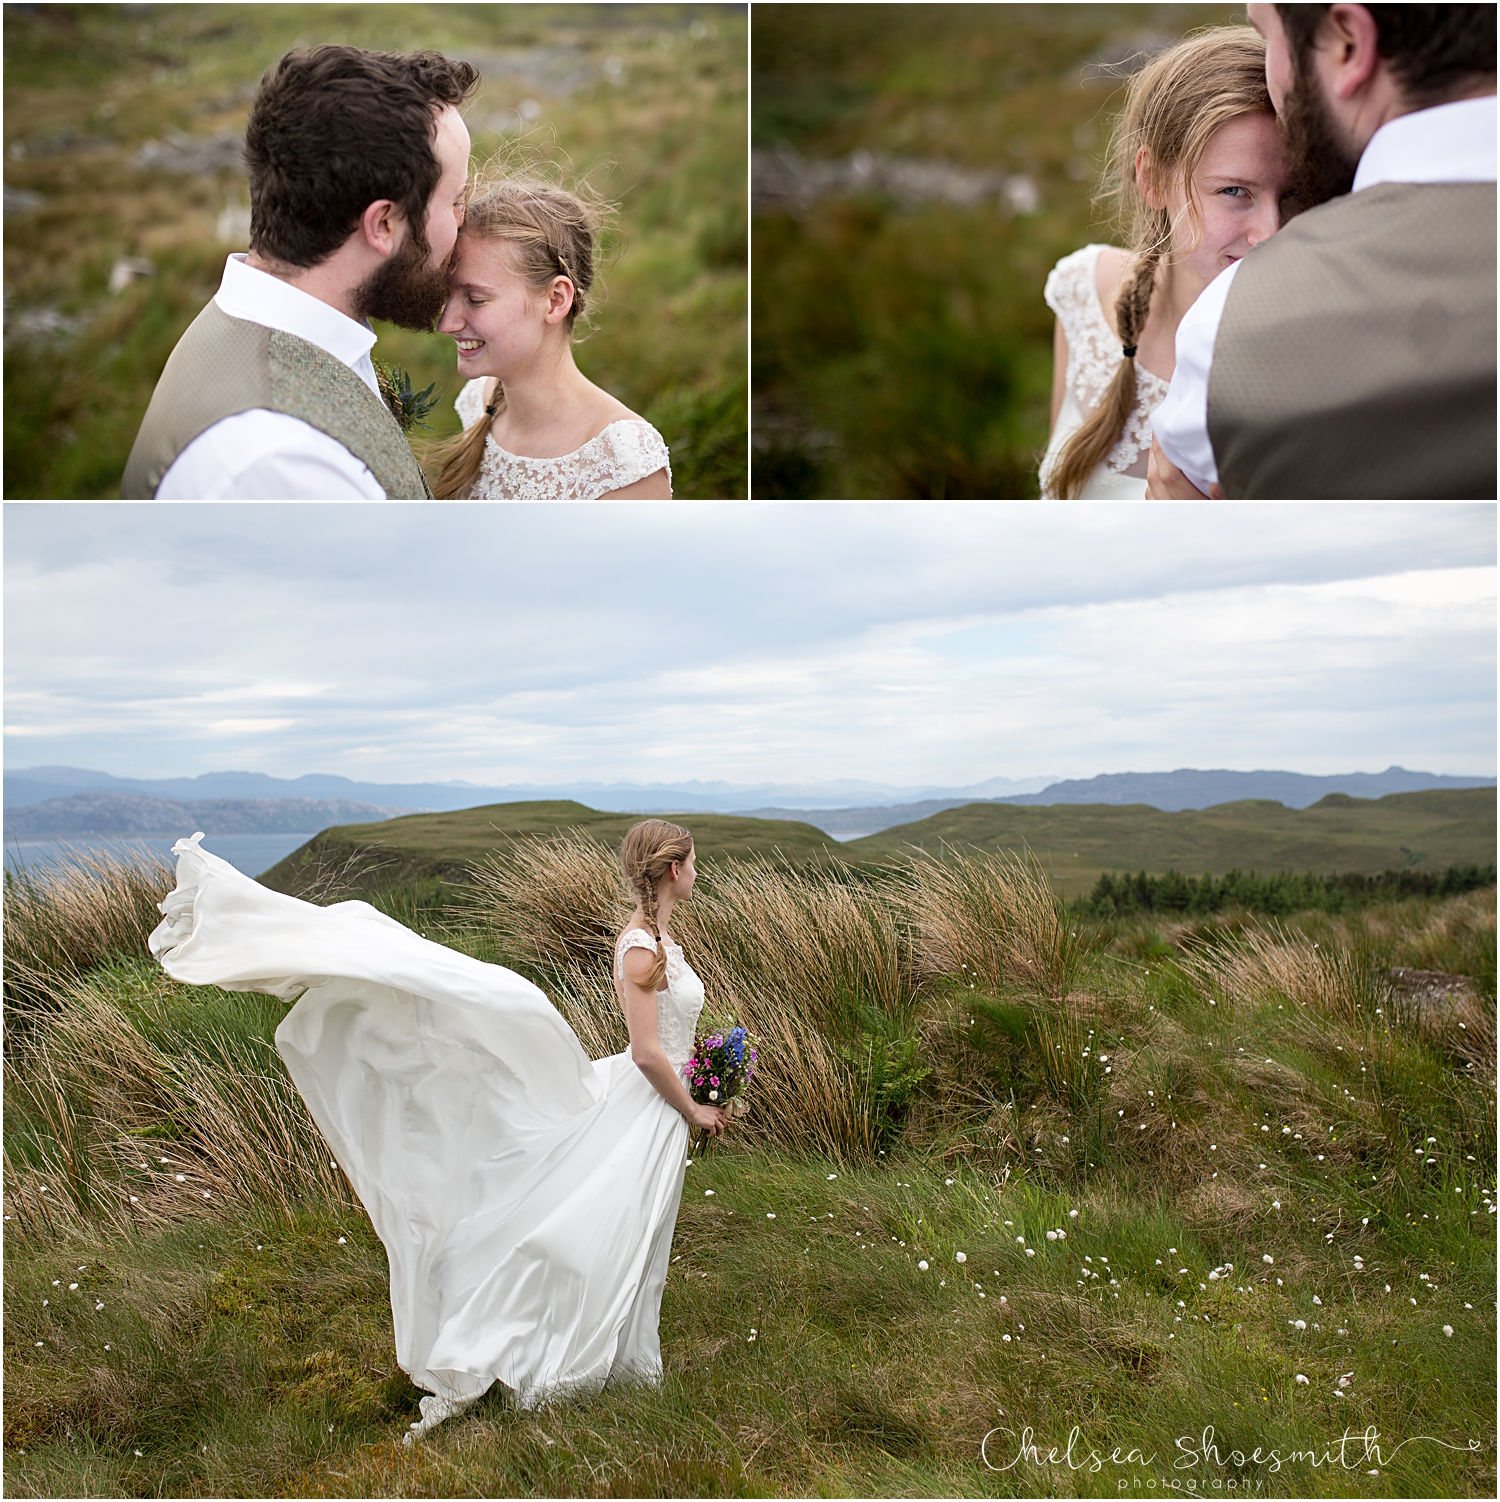 (14 of 20)Lindsay & Jacob Isle of Skye Elopement - Chelsea Shoesmith Photography_